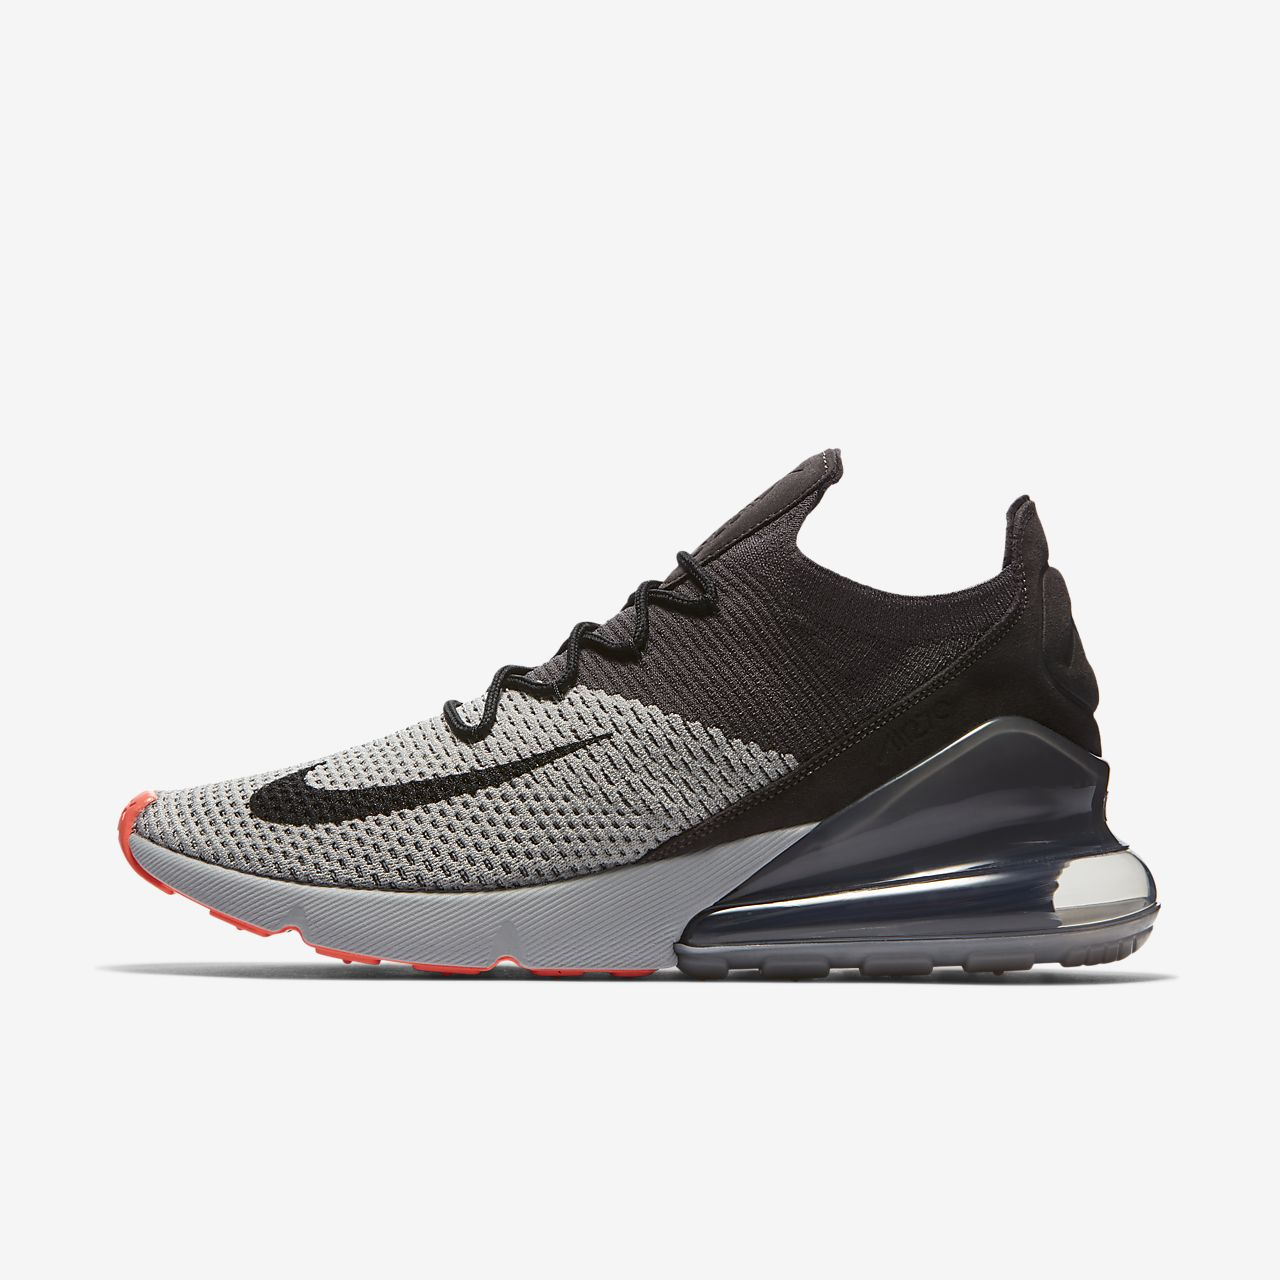 finest selection 15f59 c2eb7 ... Nike Air Max 270 Flyknit Men s Shoe